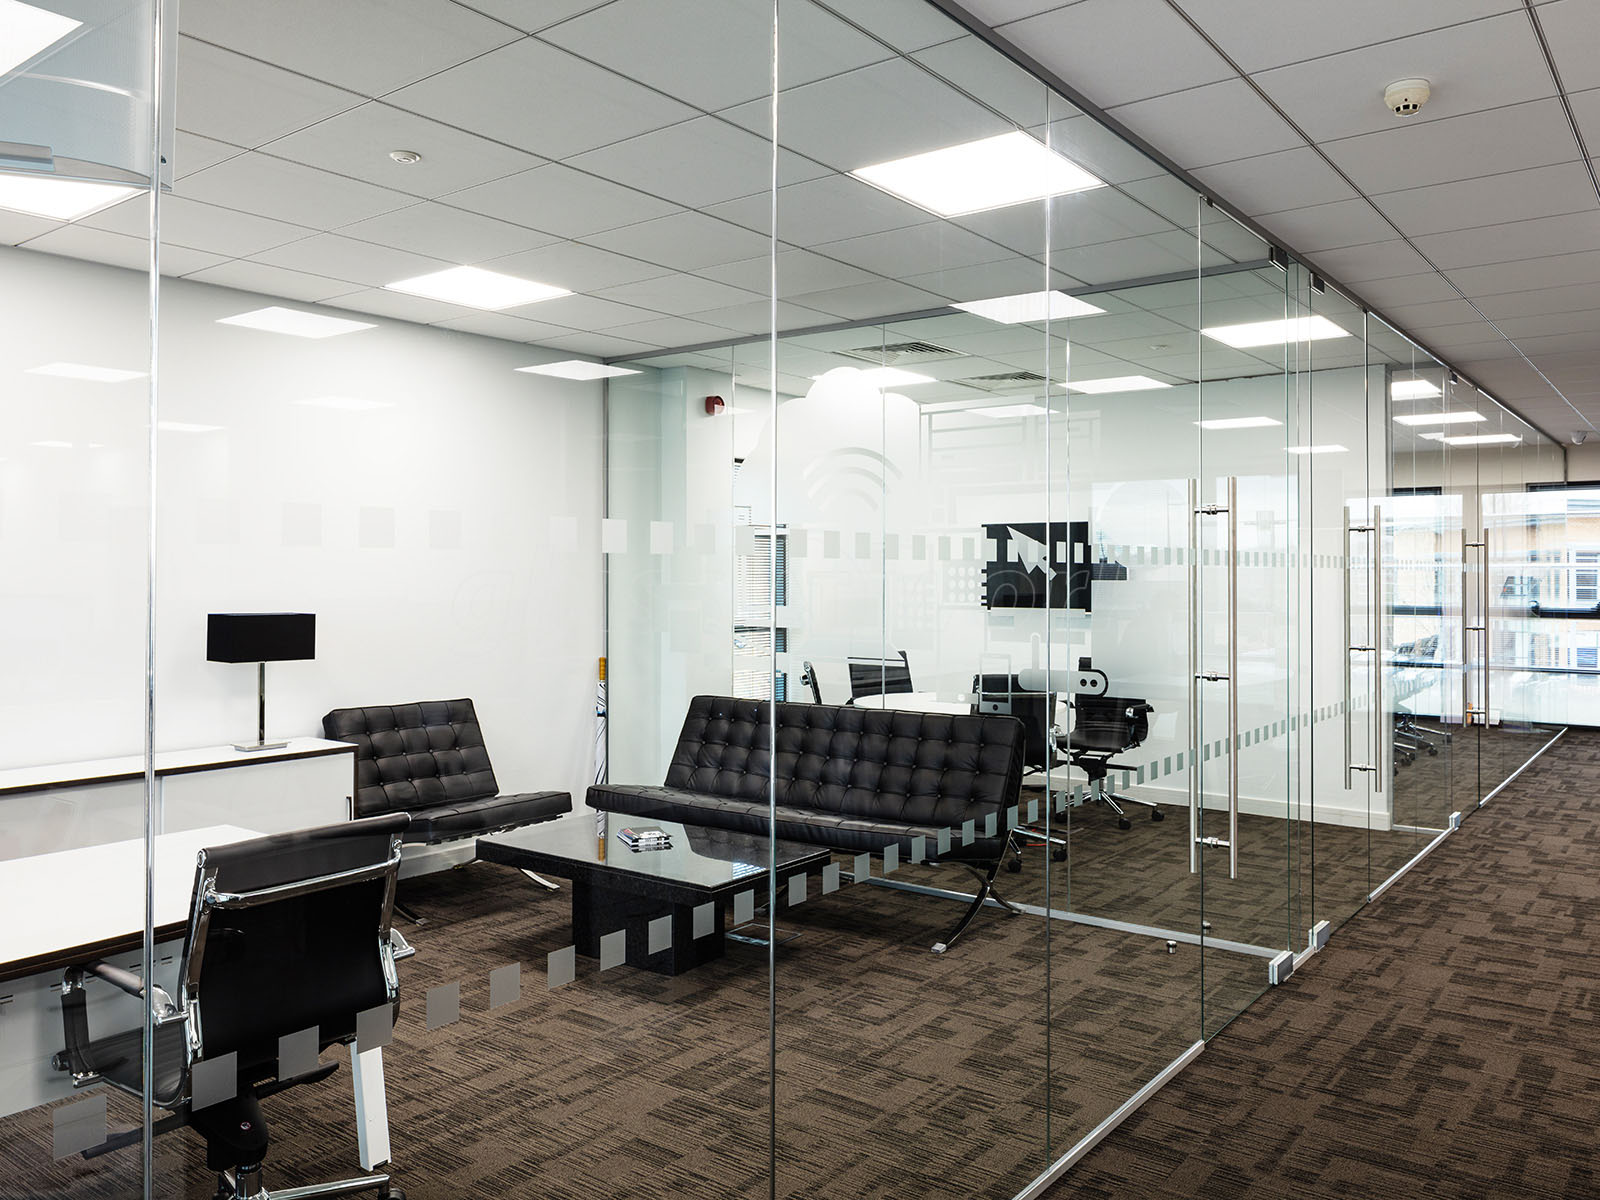 Glass Partitioning at Millgate Connect  Sheffield   Mulitple     Millgate Connect  Sheffield   Mulitple Interior Glass Walls